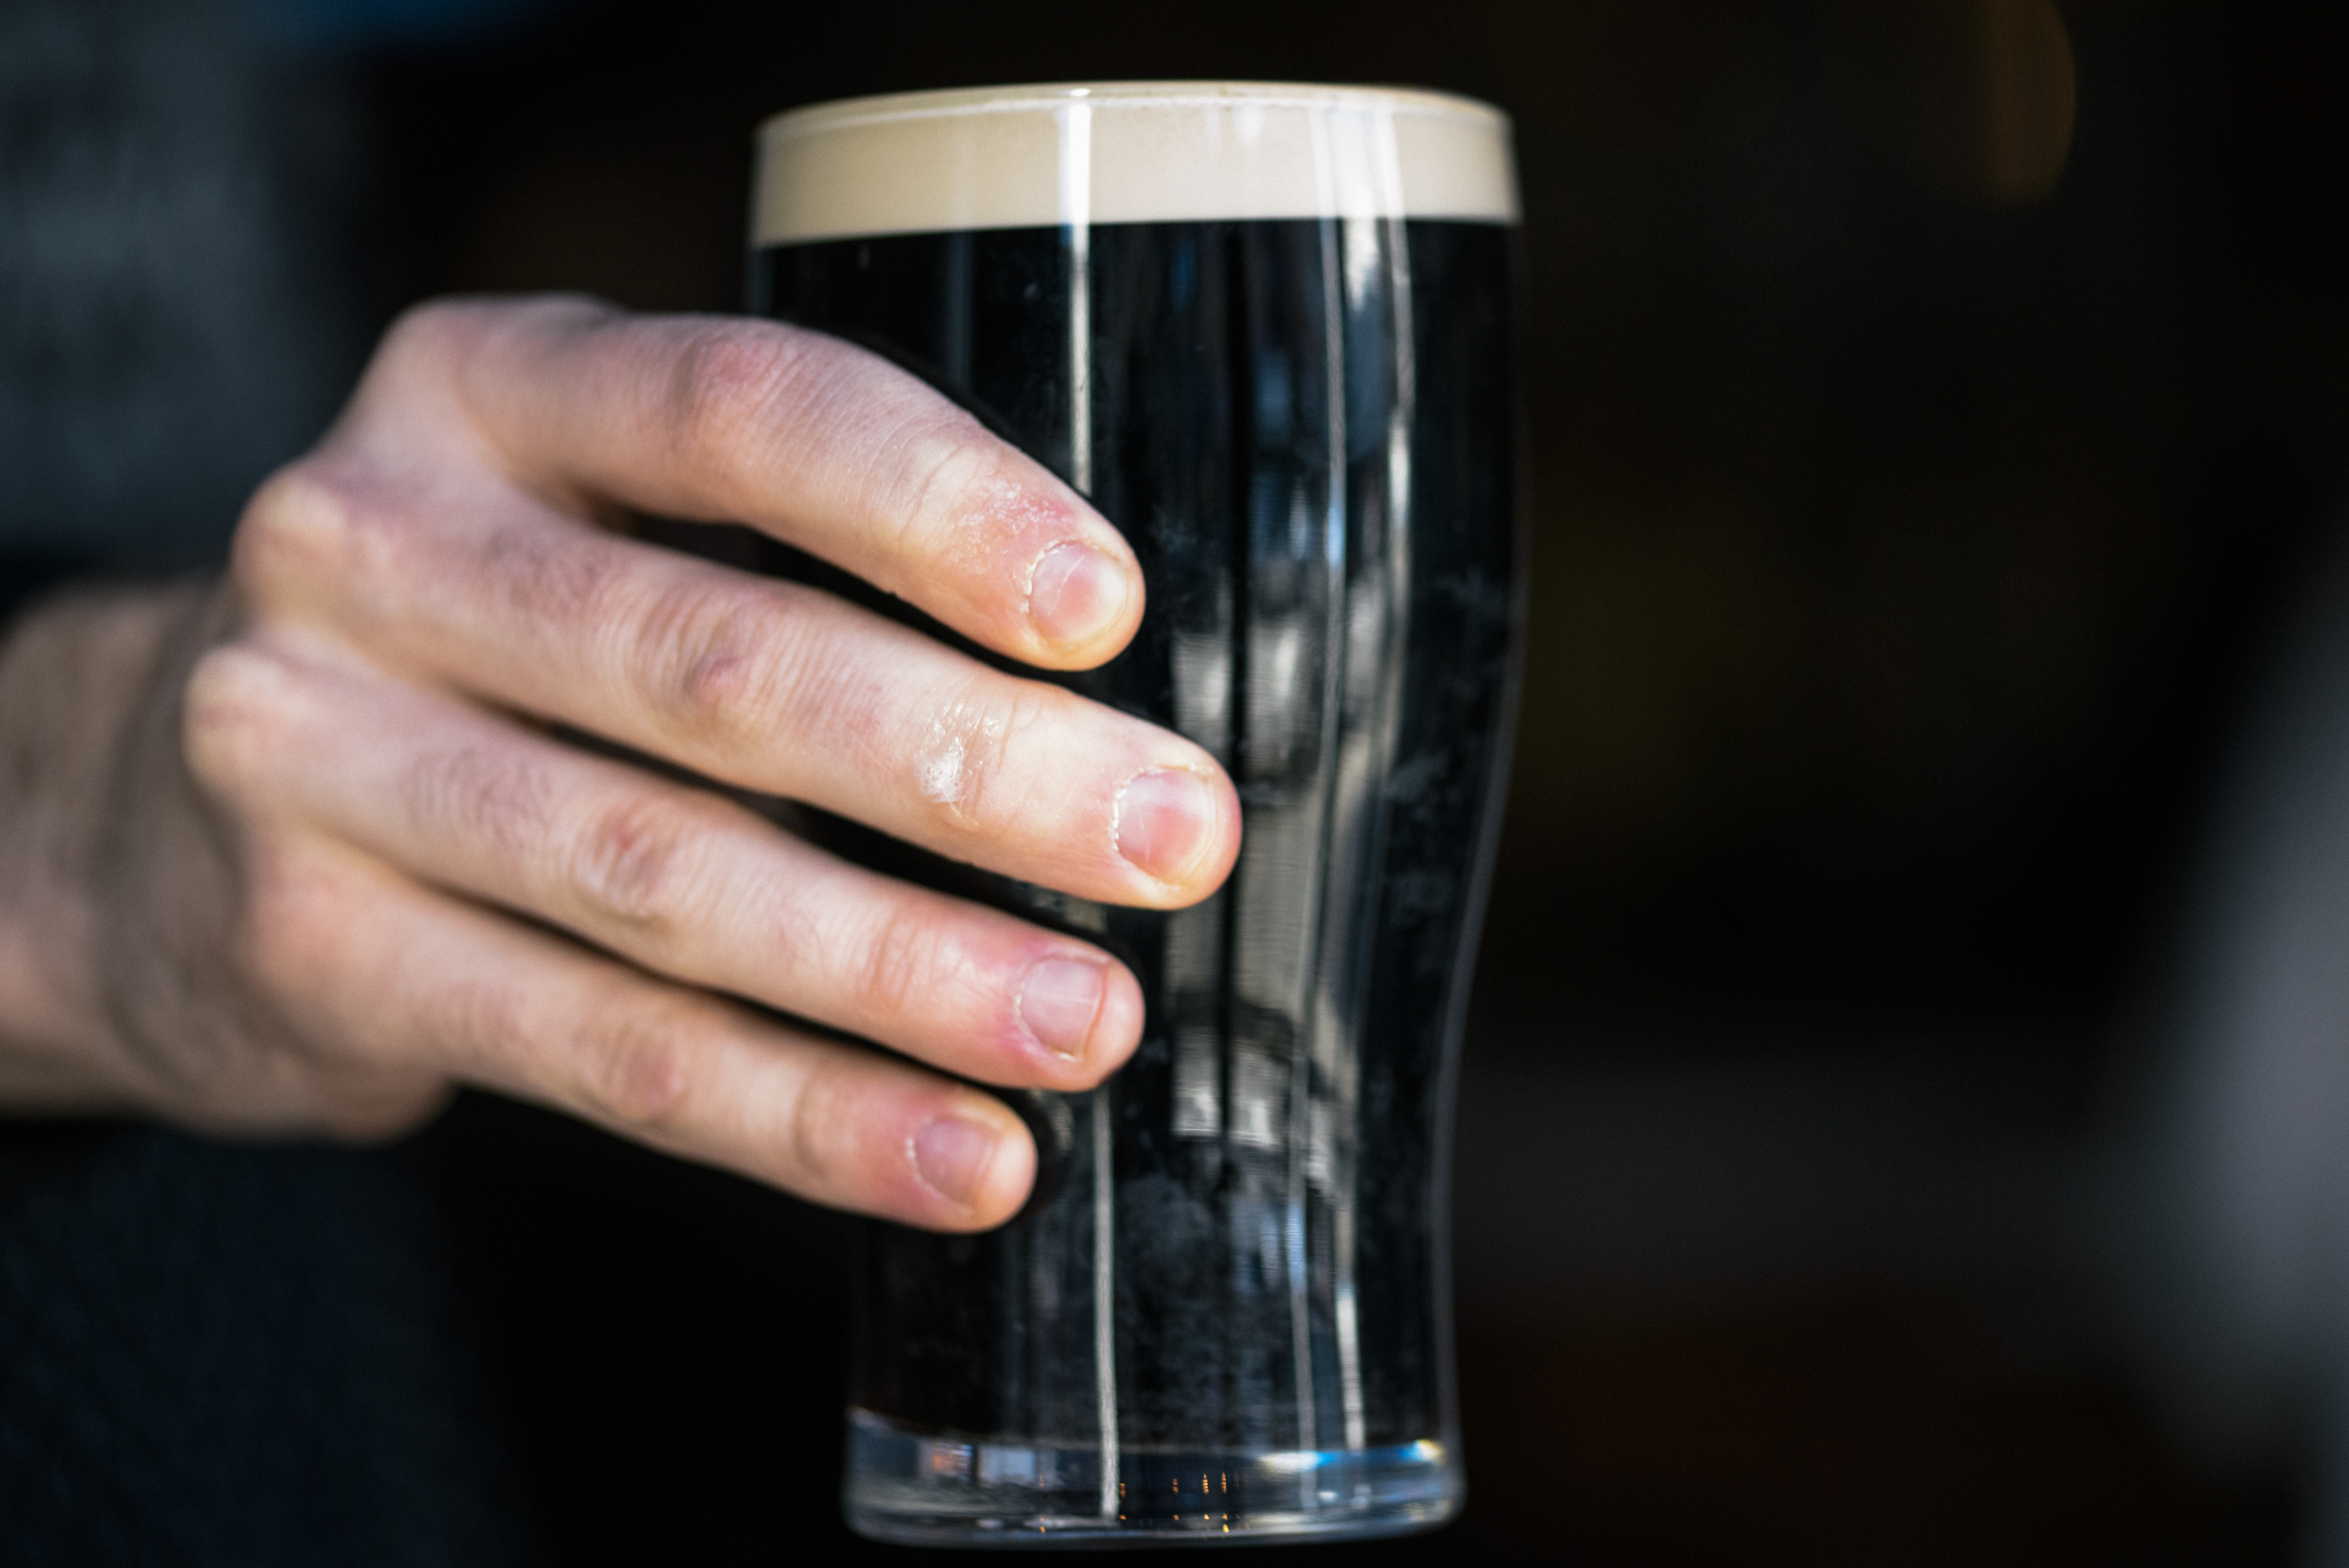 hand holding up pint of guinness beer